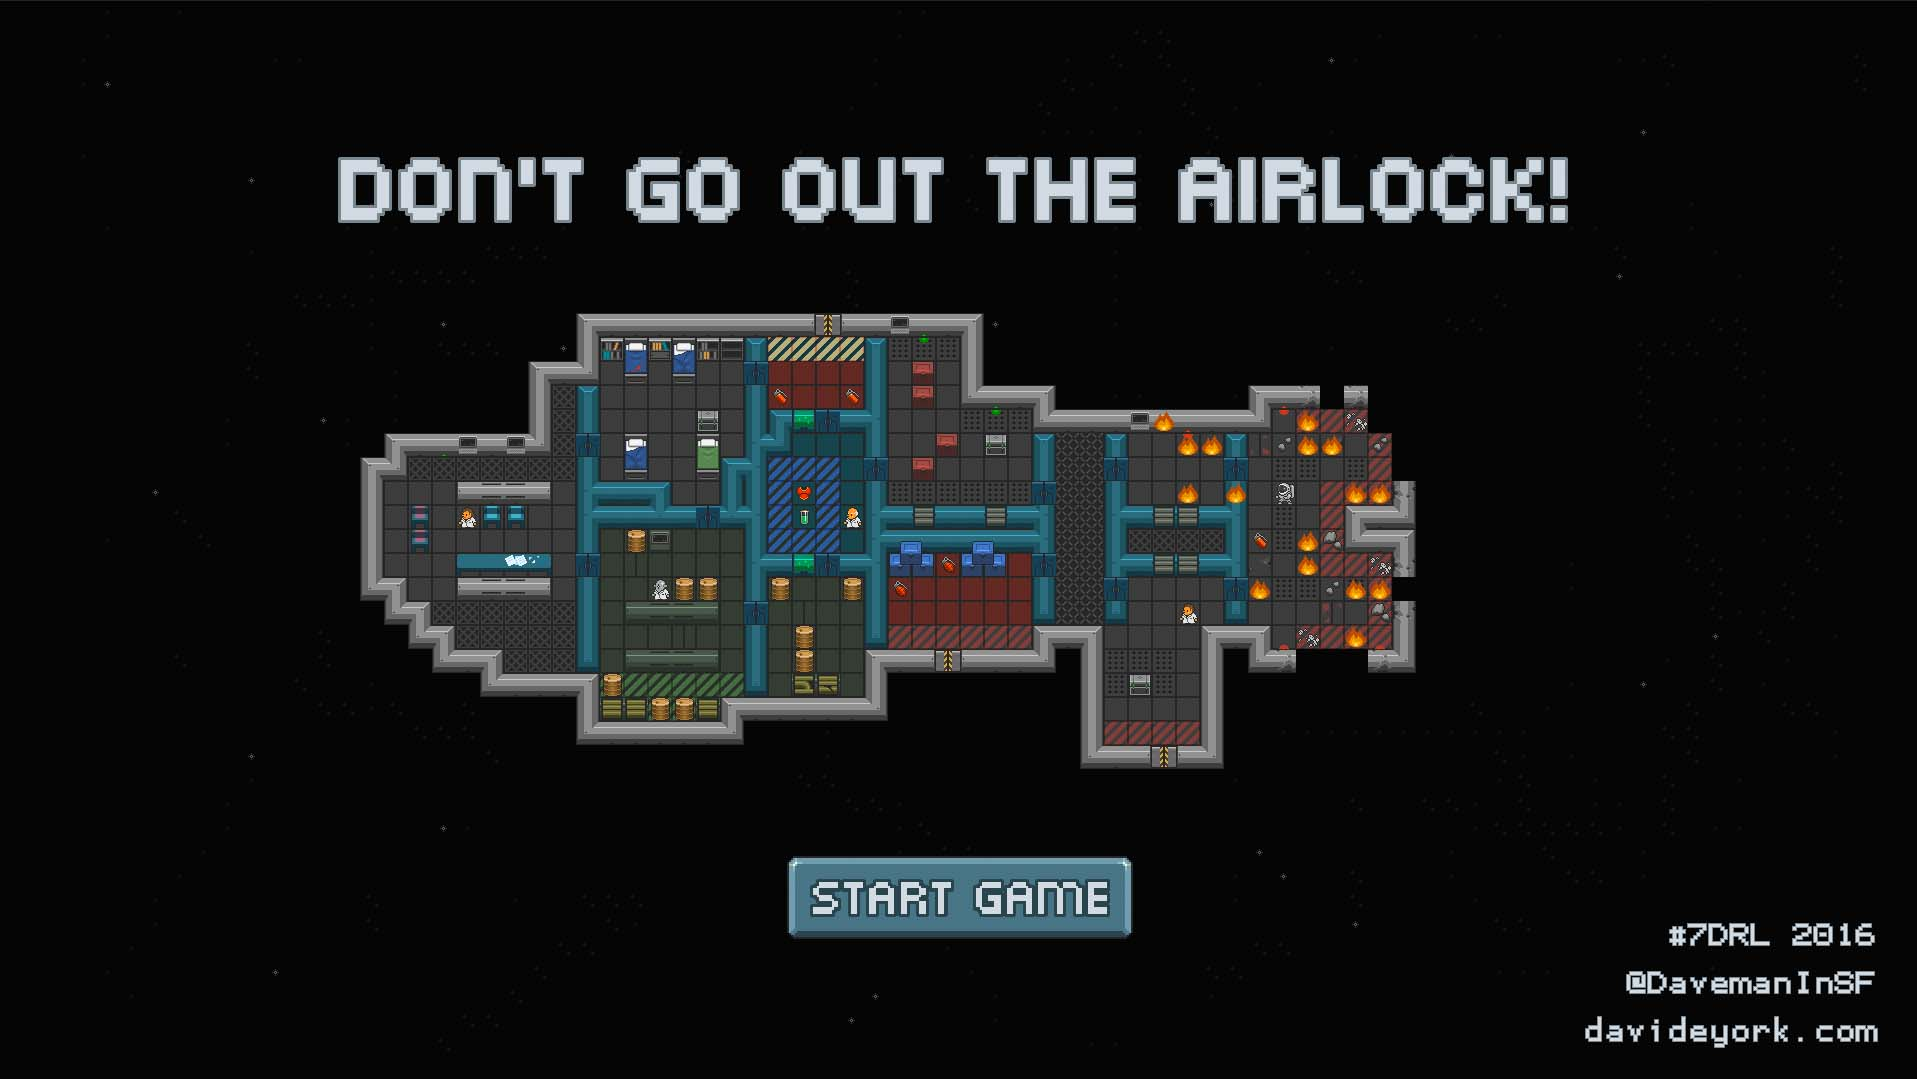 Don't go out the Airlock intro